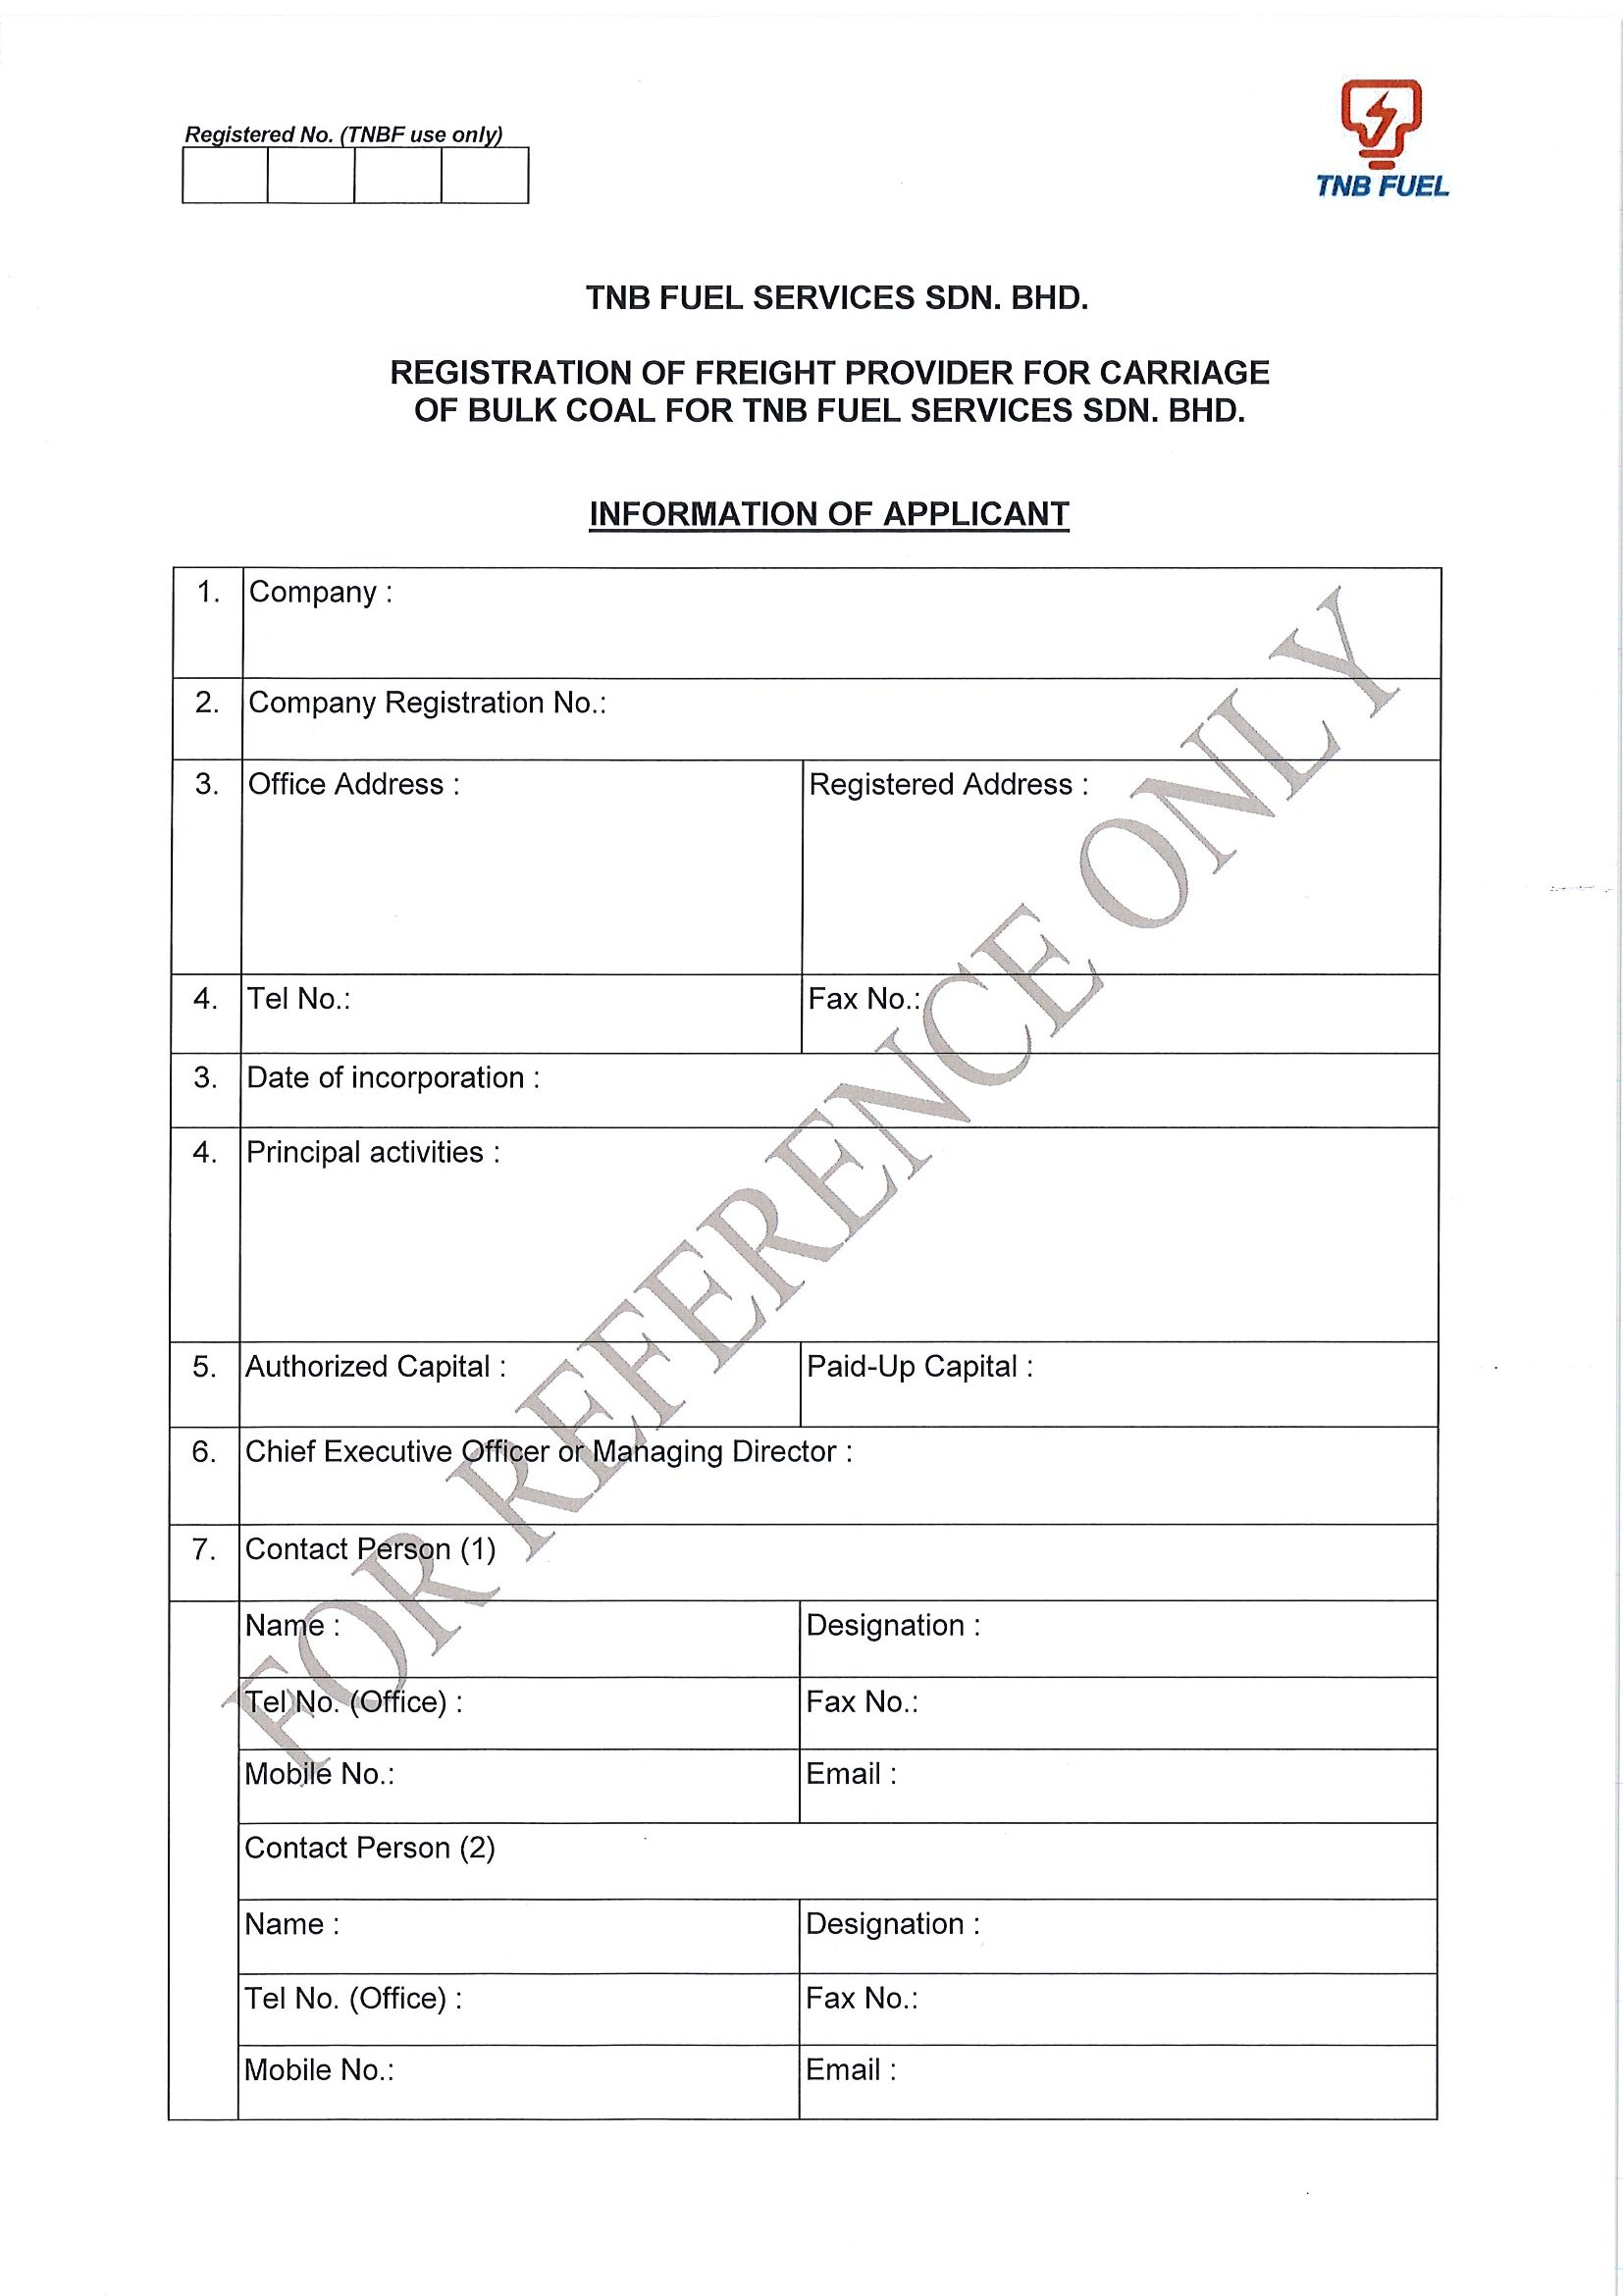 Registration of Freight Provider for Carriage of Bulk Coal for TNB Fuel Services Sdn Bhd